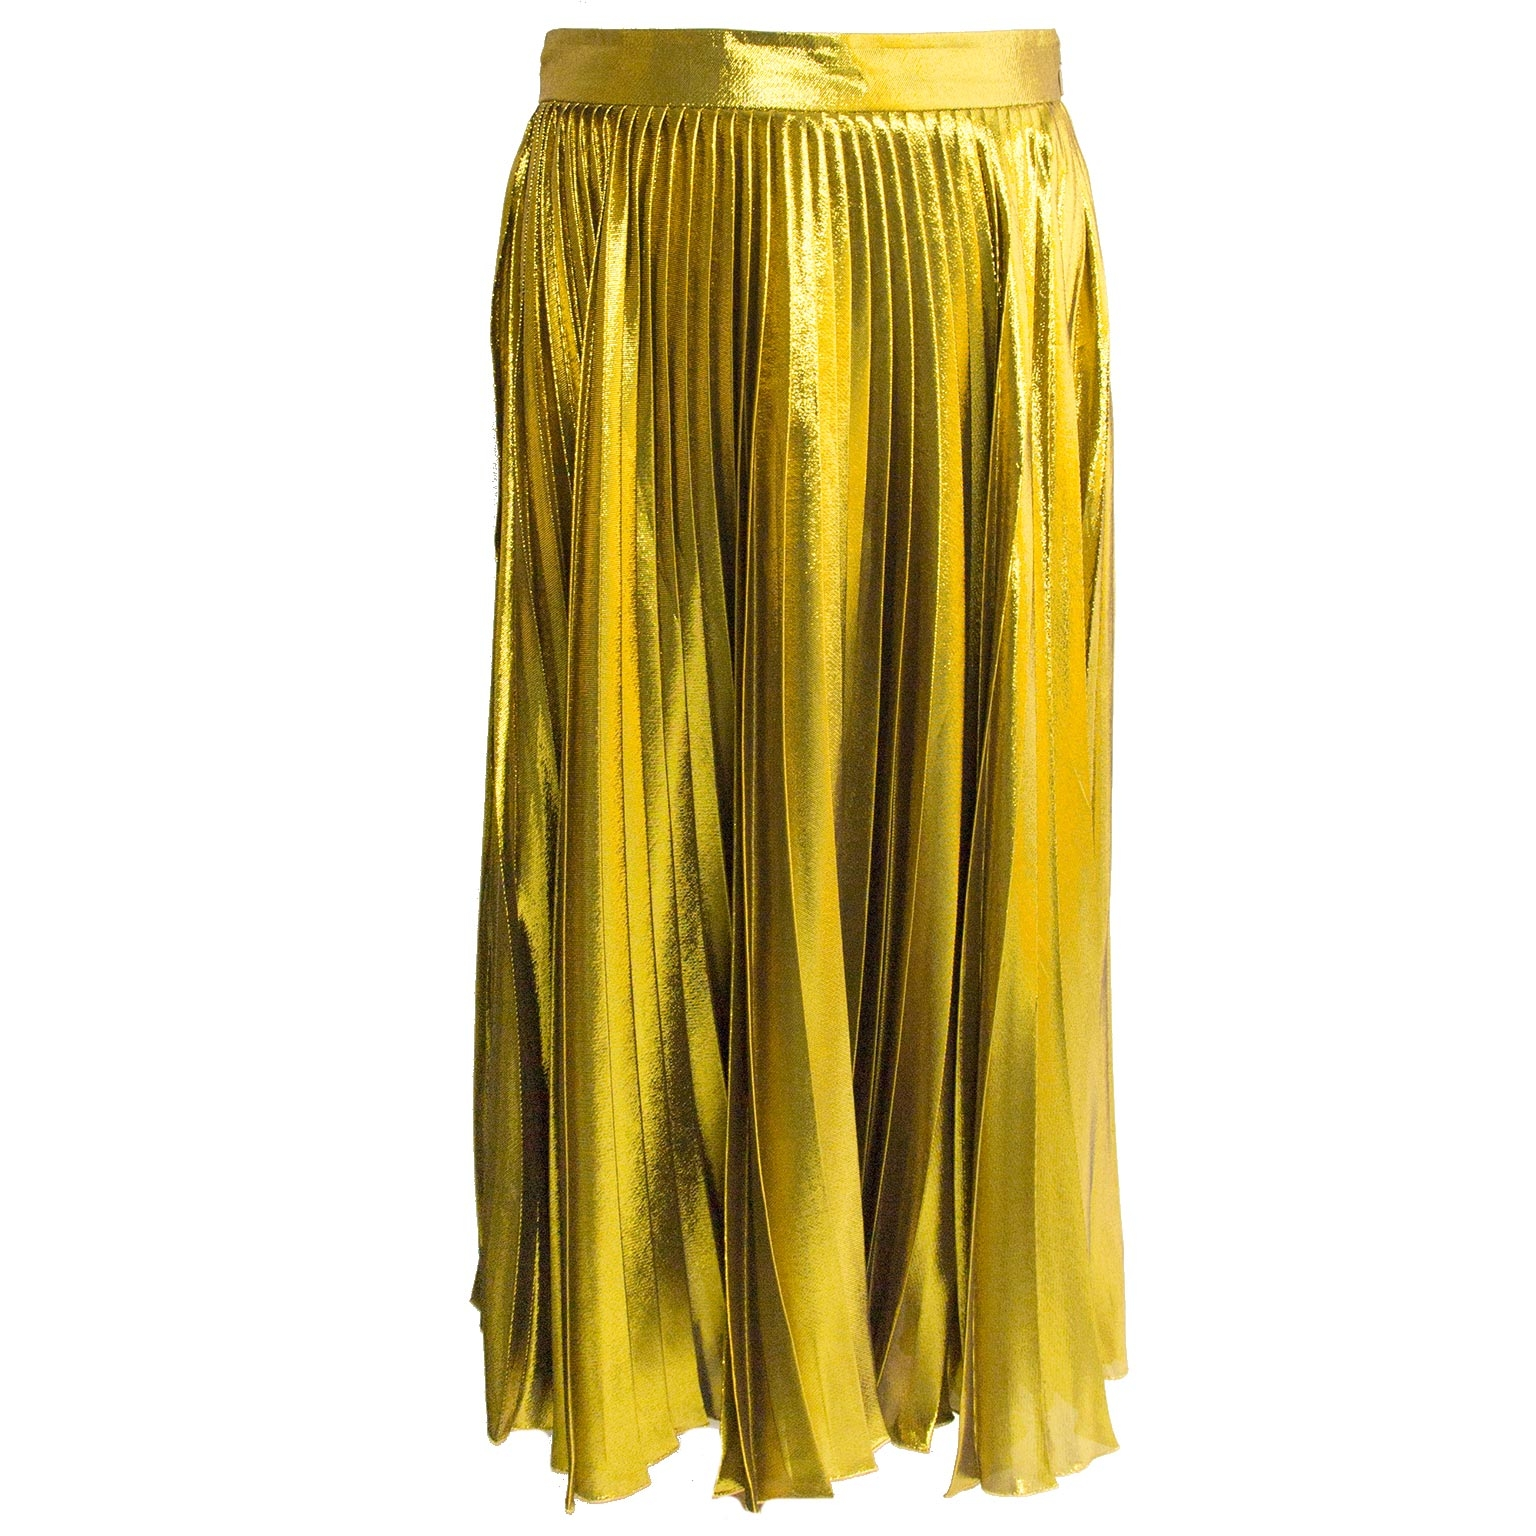 gucci gold pleated skirt now for sale at labellov vintage fashion webshop belgium